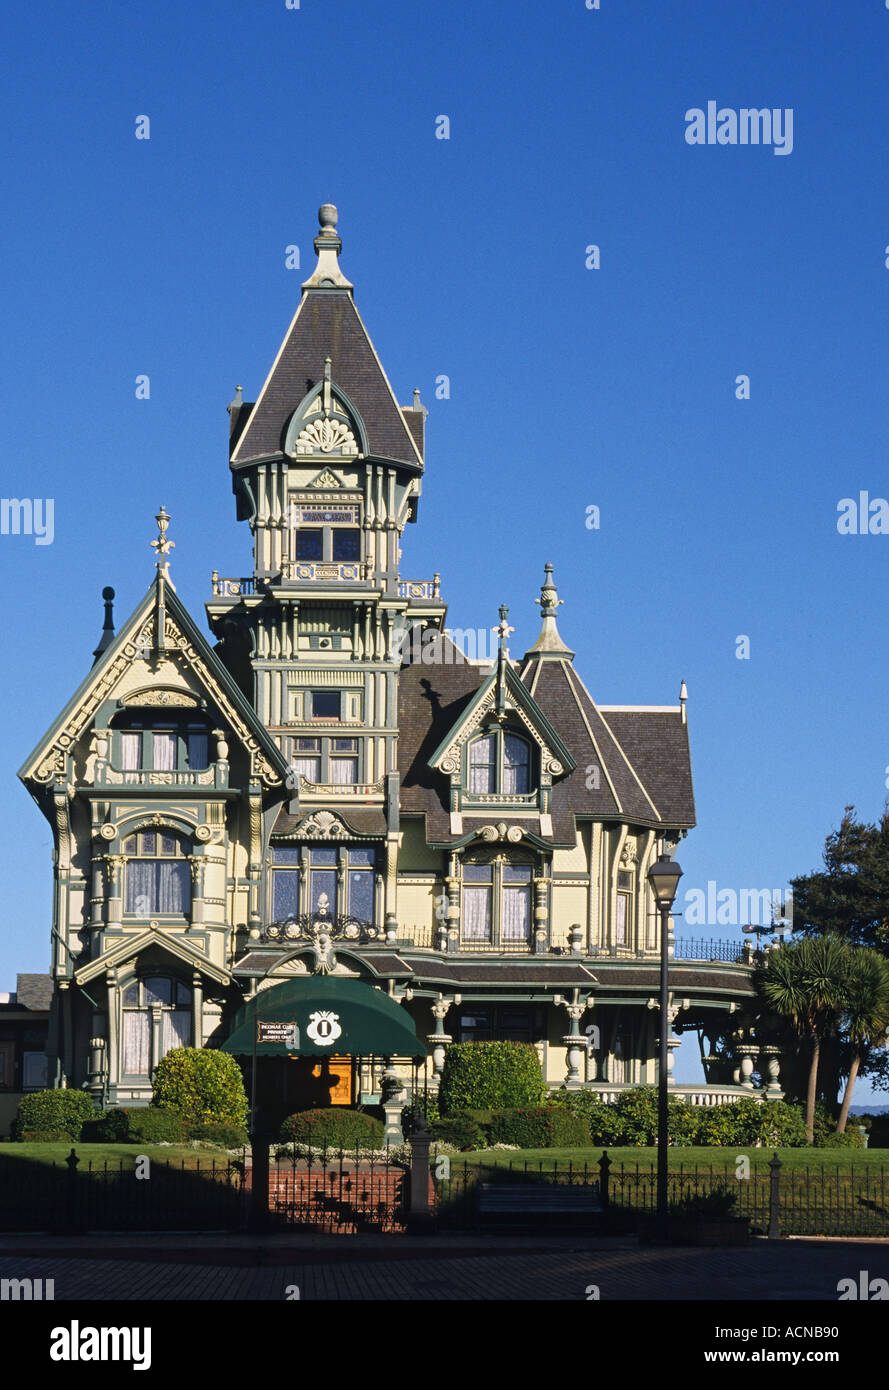 California Redwood Empire Eureka Carson Mansion built 1886 - Stock Image